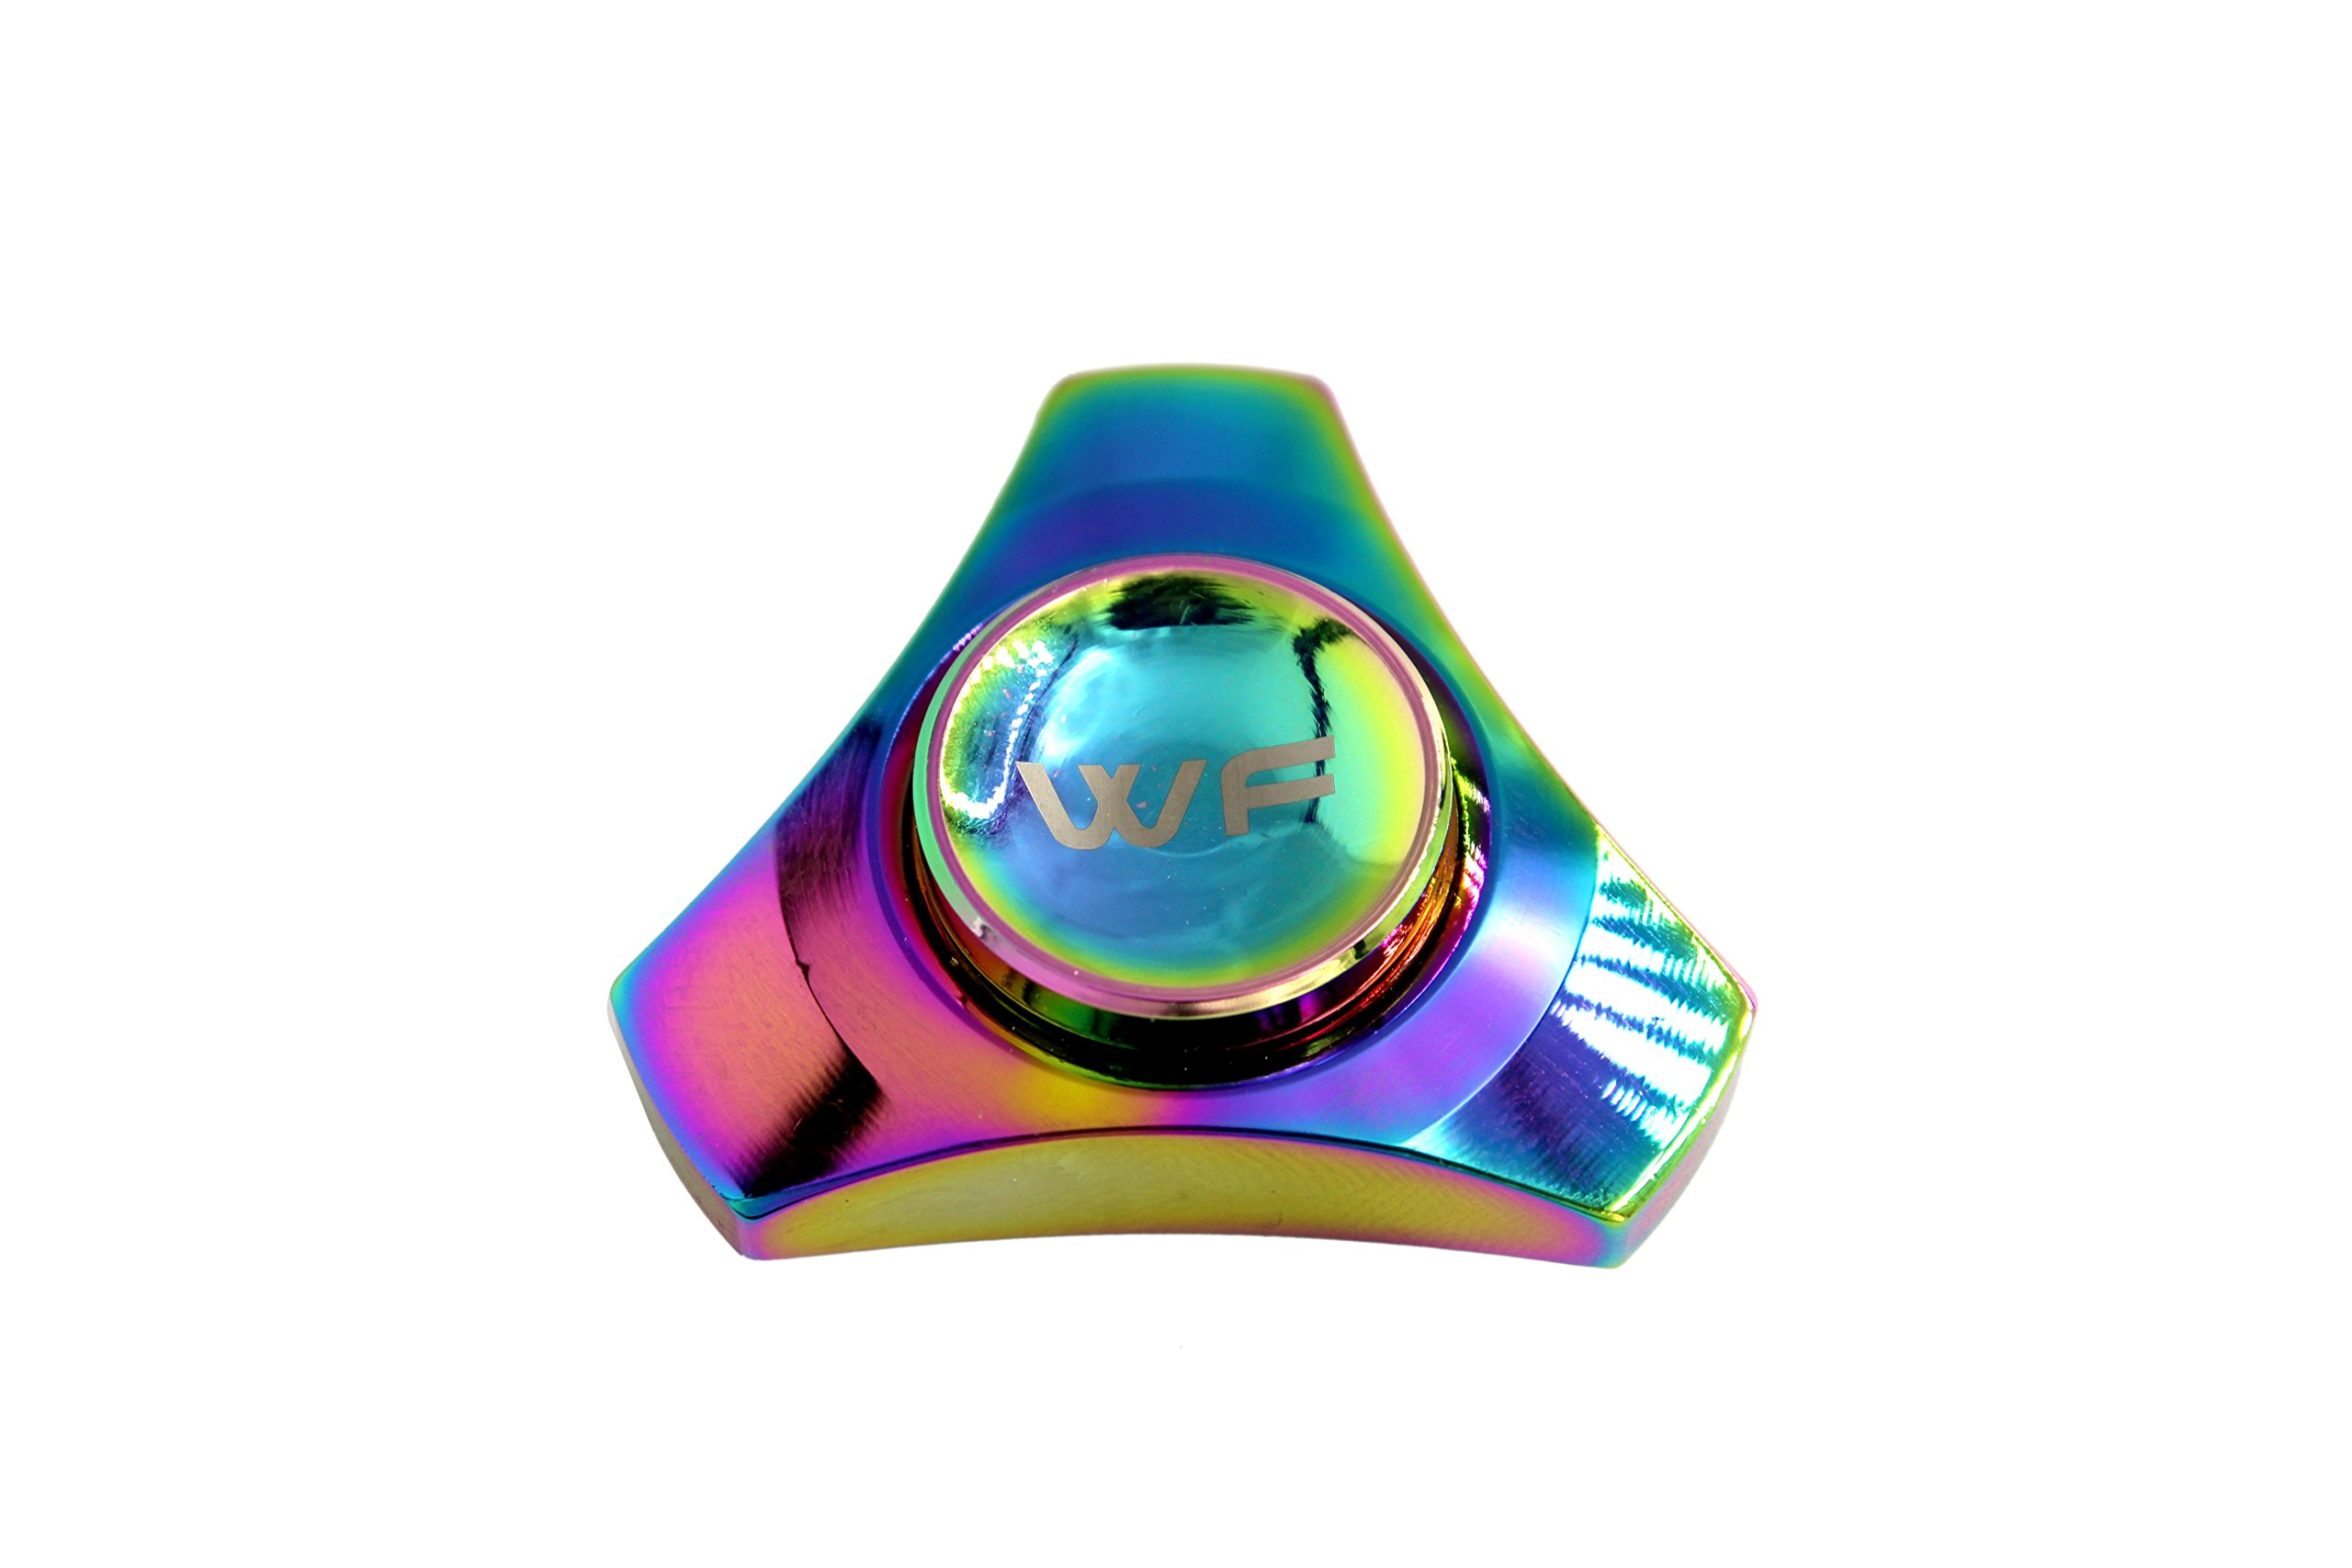 WeFidget ELECTROPLATED Mini Hand Spinner Designs, Insane Spin Times, Super Discrete, Premium Finishes, Replaceable Bearings, Trinity Design, Tin Travel Case Included by WeFidget (Image #1)